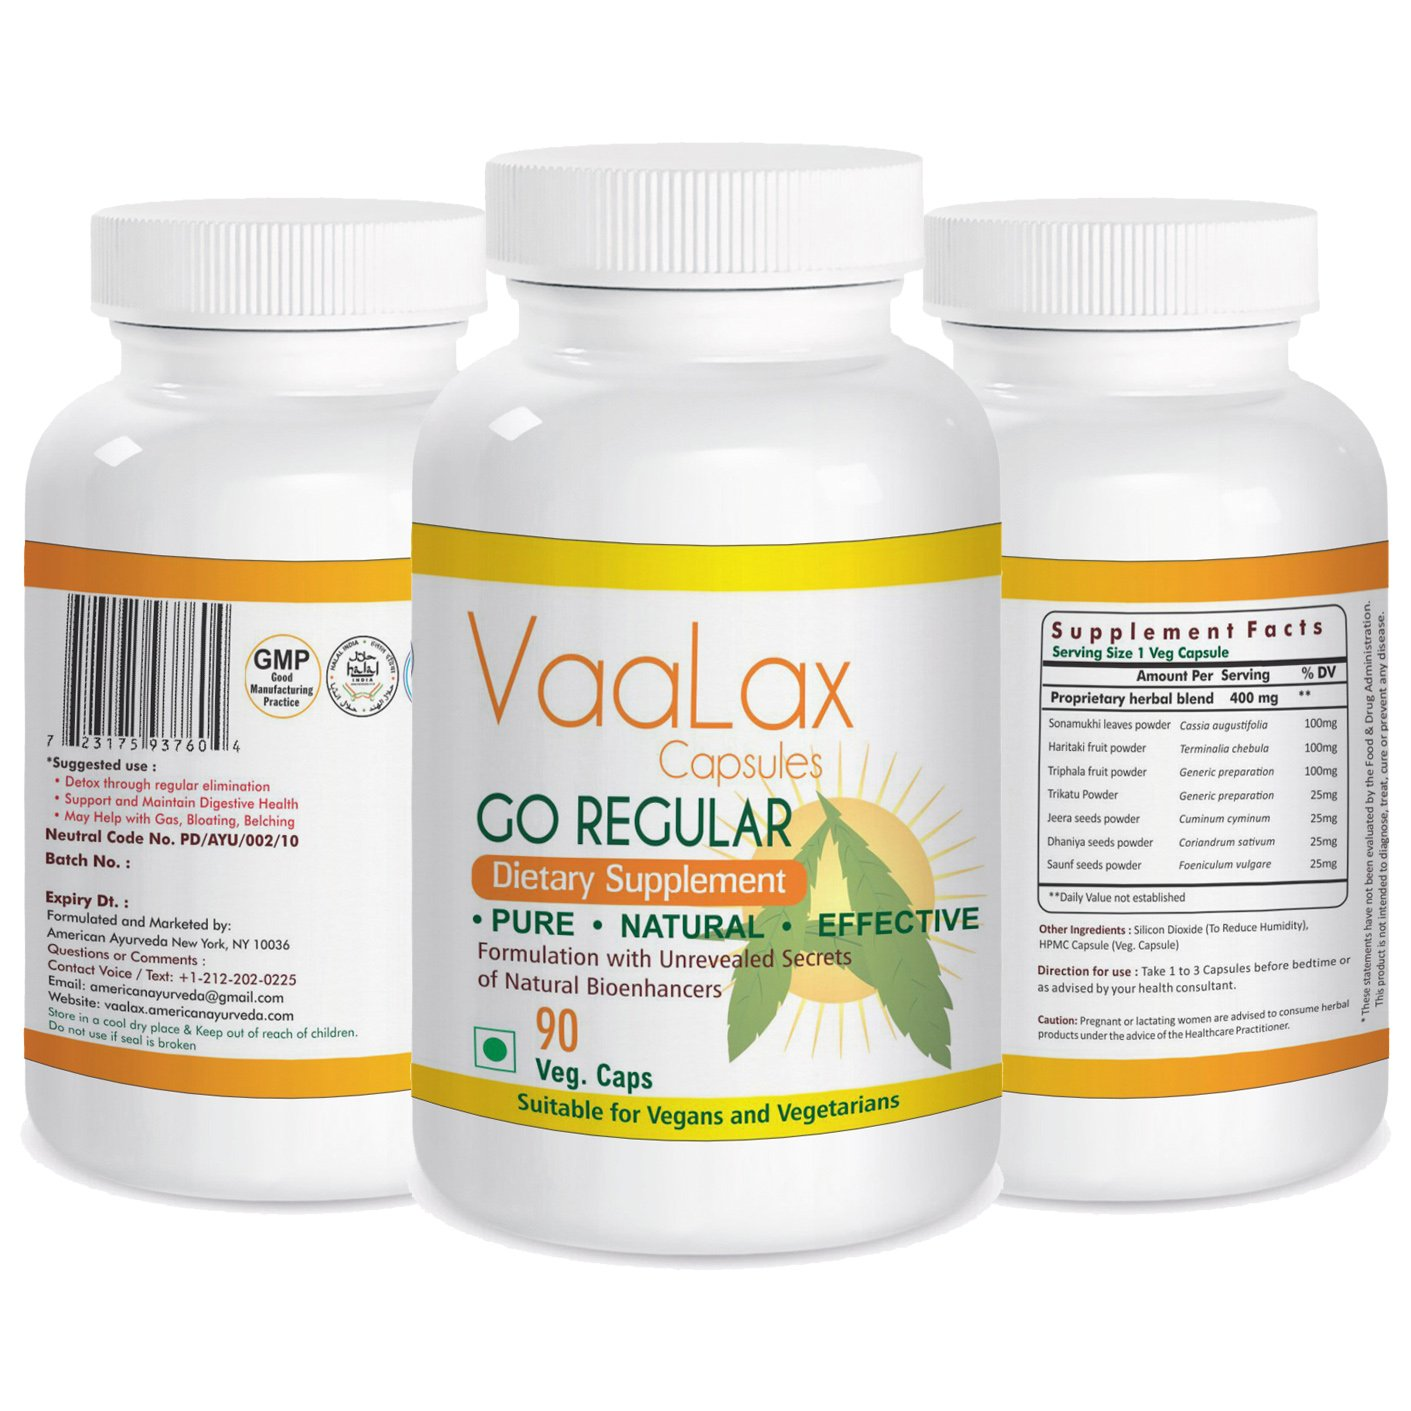 VaaLax Capsules Laxative Herbal Supplement for Regularity, Natural Colon Cleanse & Detox, Supports Weight Loss & Digestive Health. Gentle but Highly Effective Formula by American Ayurveda